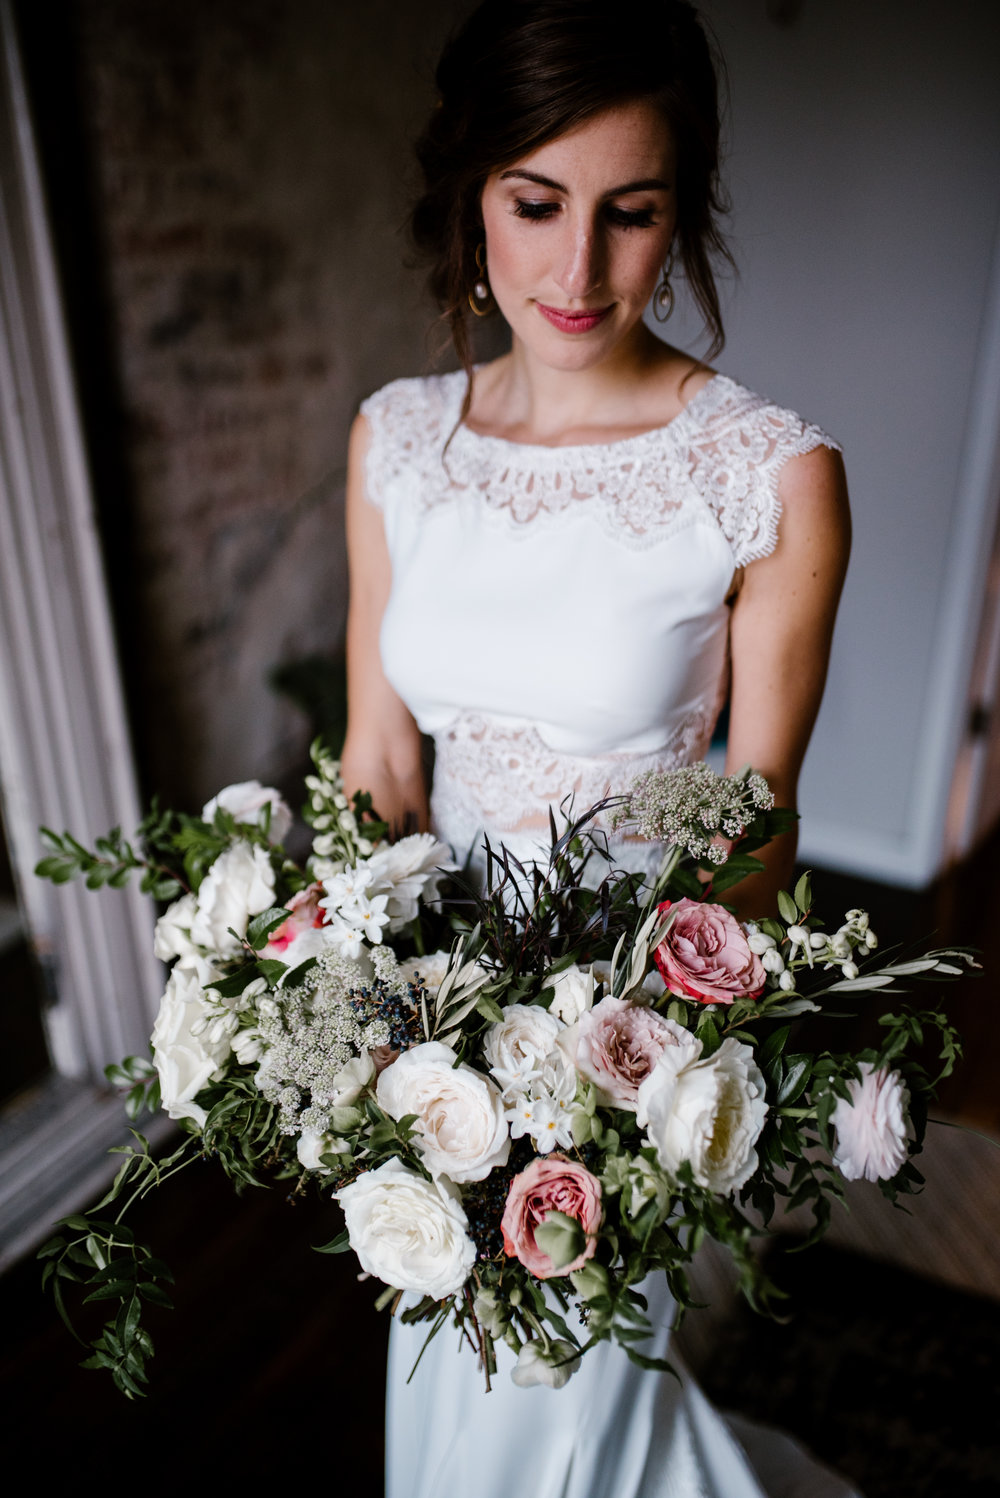 Natural, untamed wedding flowers with garden roses, ranunculus, and wildflowers // Southeastern Wedding Floral Designer